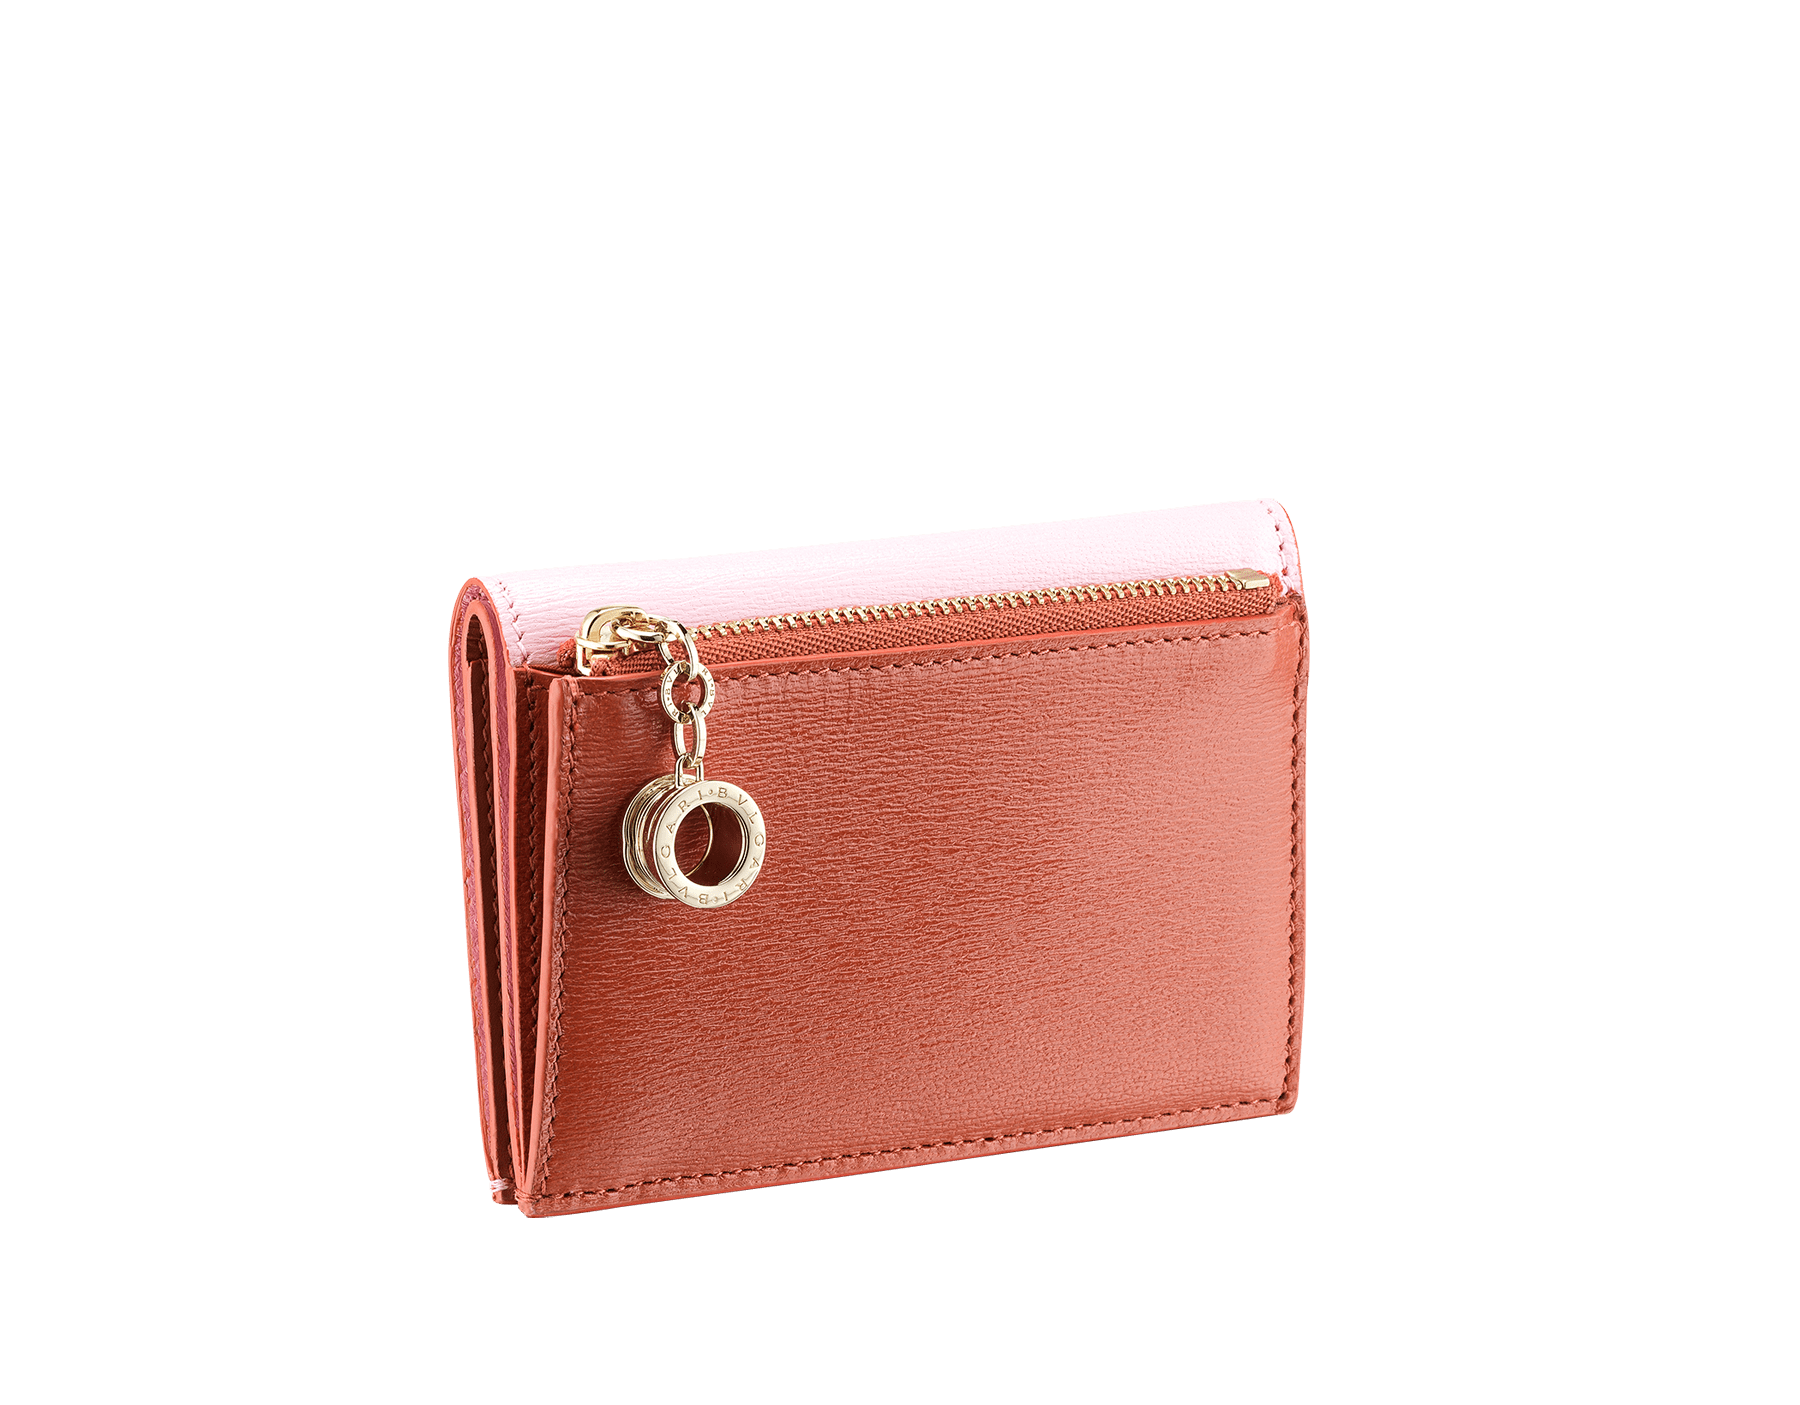 B.zero1 double folded credit card holder in rosa di francia and imperial topaz goatskin. Iconic B.zero1 charm in light gold plated brass. 289086 image 3